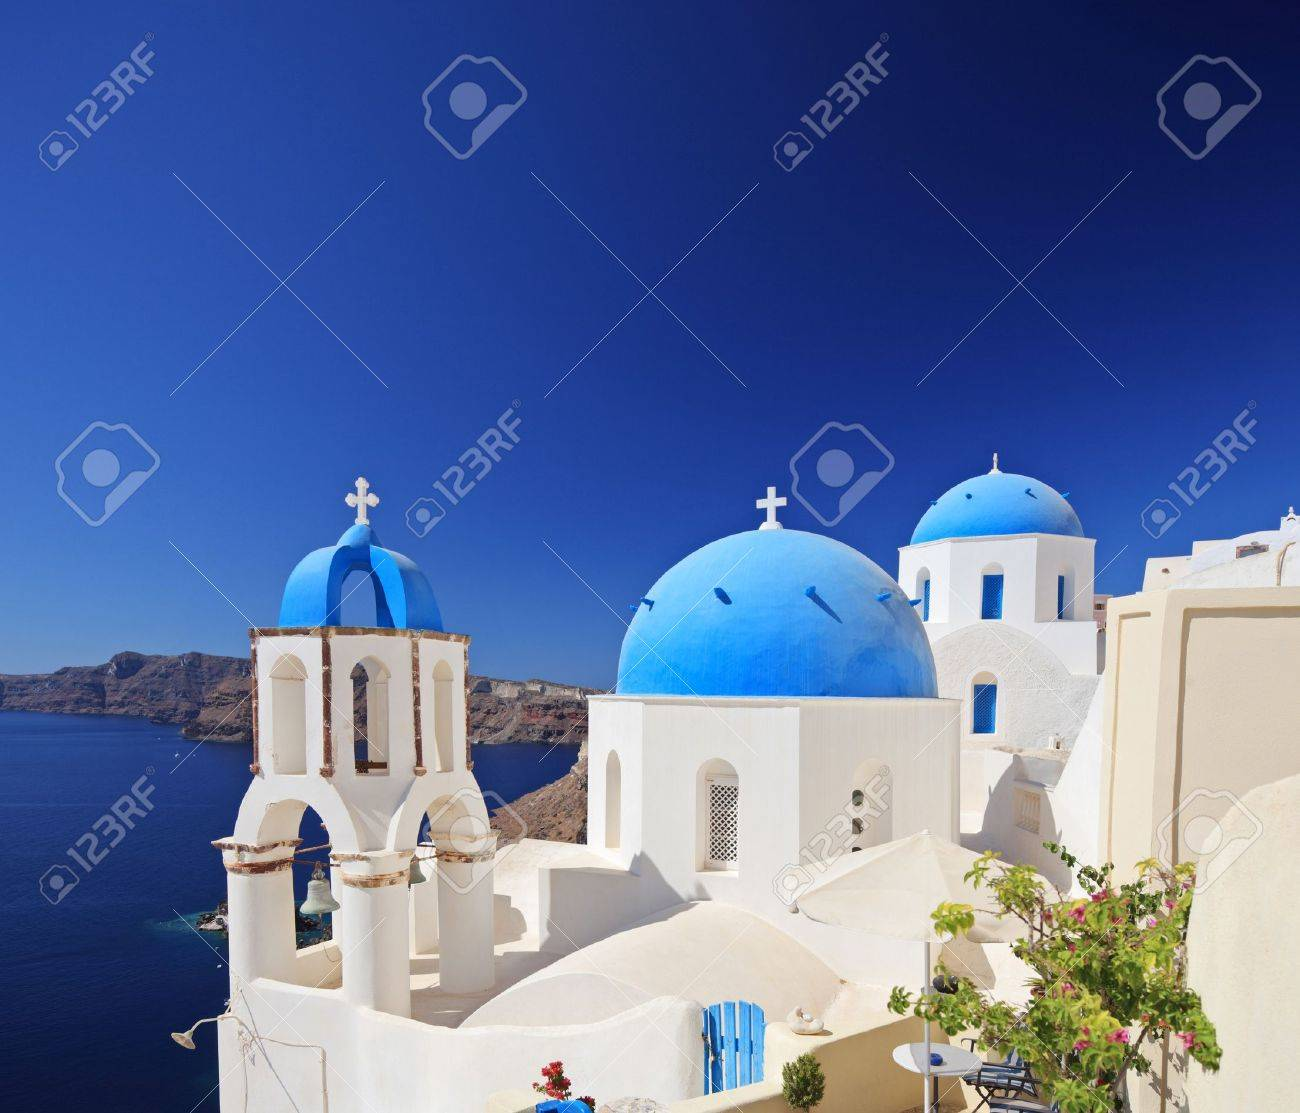 View of blue dome church in Oia village on Santorini island, Greece Stock Photo - 11264760